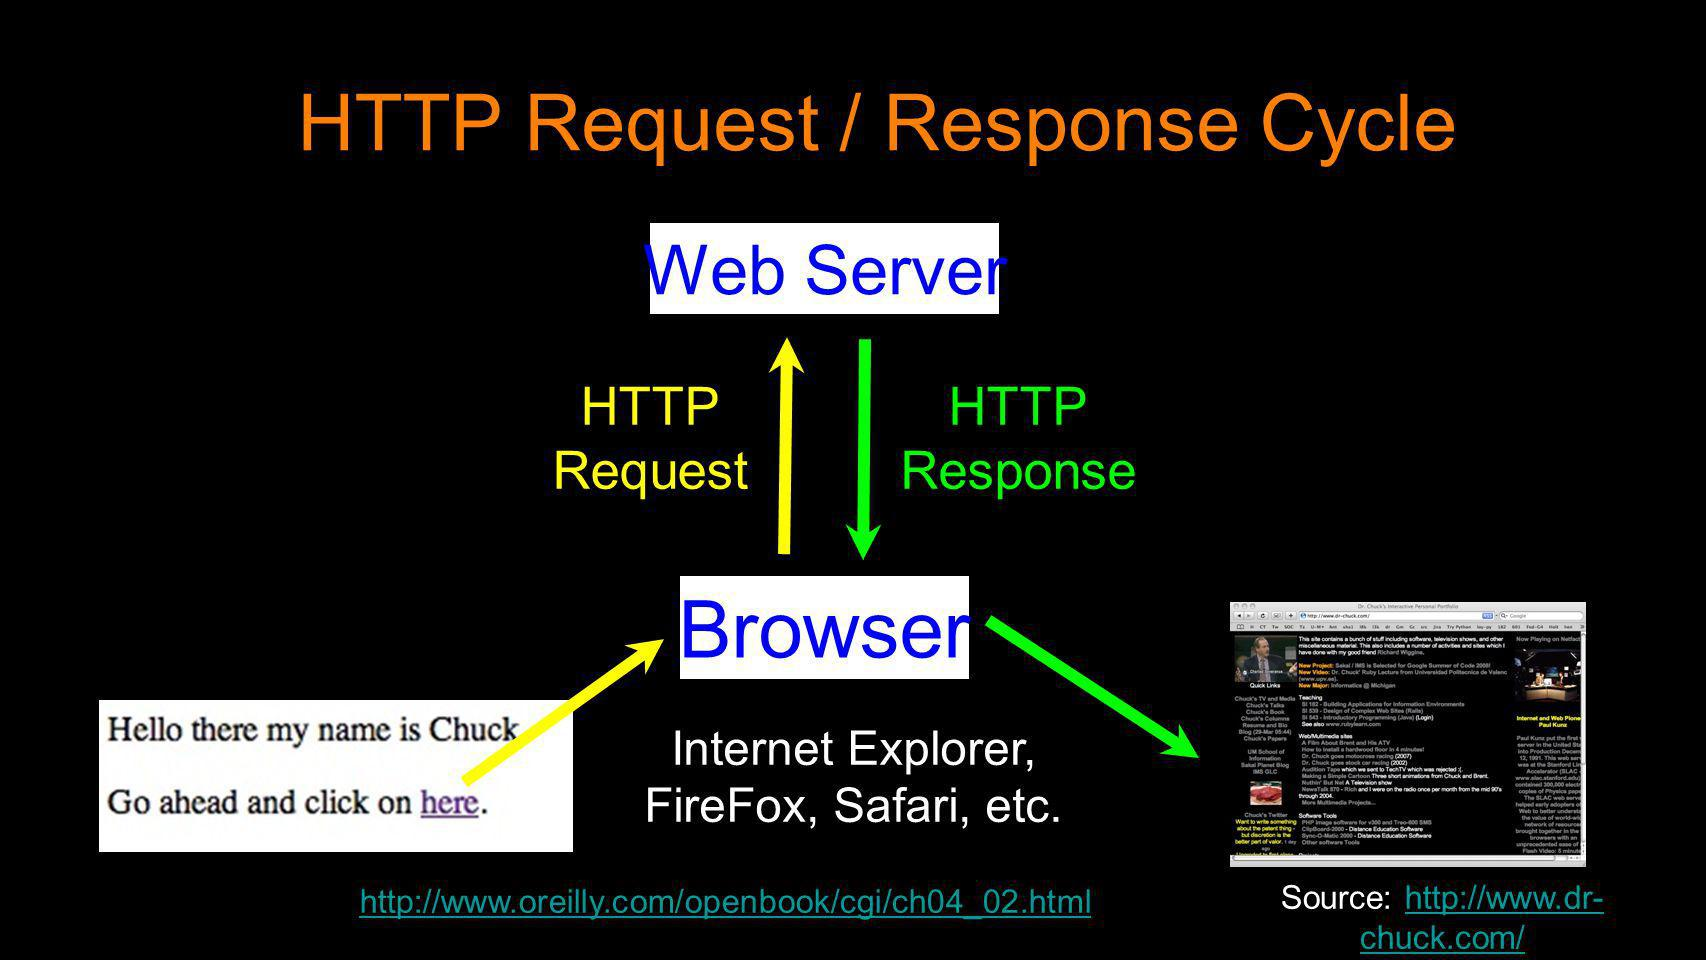 HTTP Request / Response Cycle